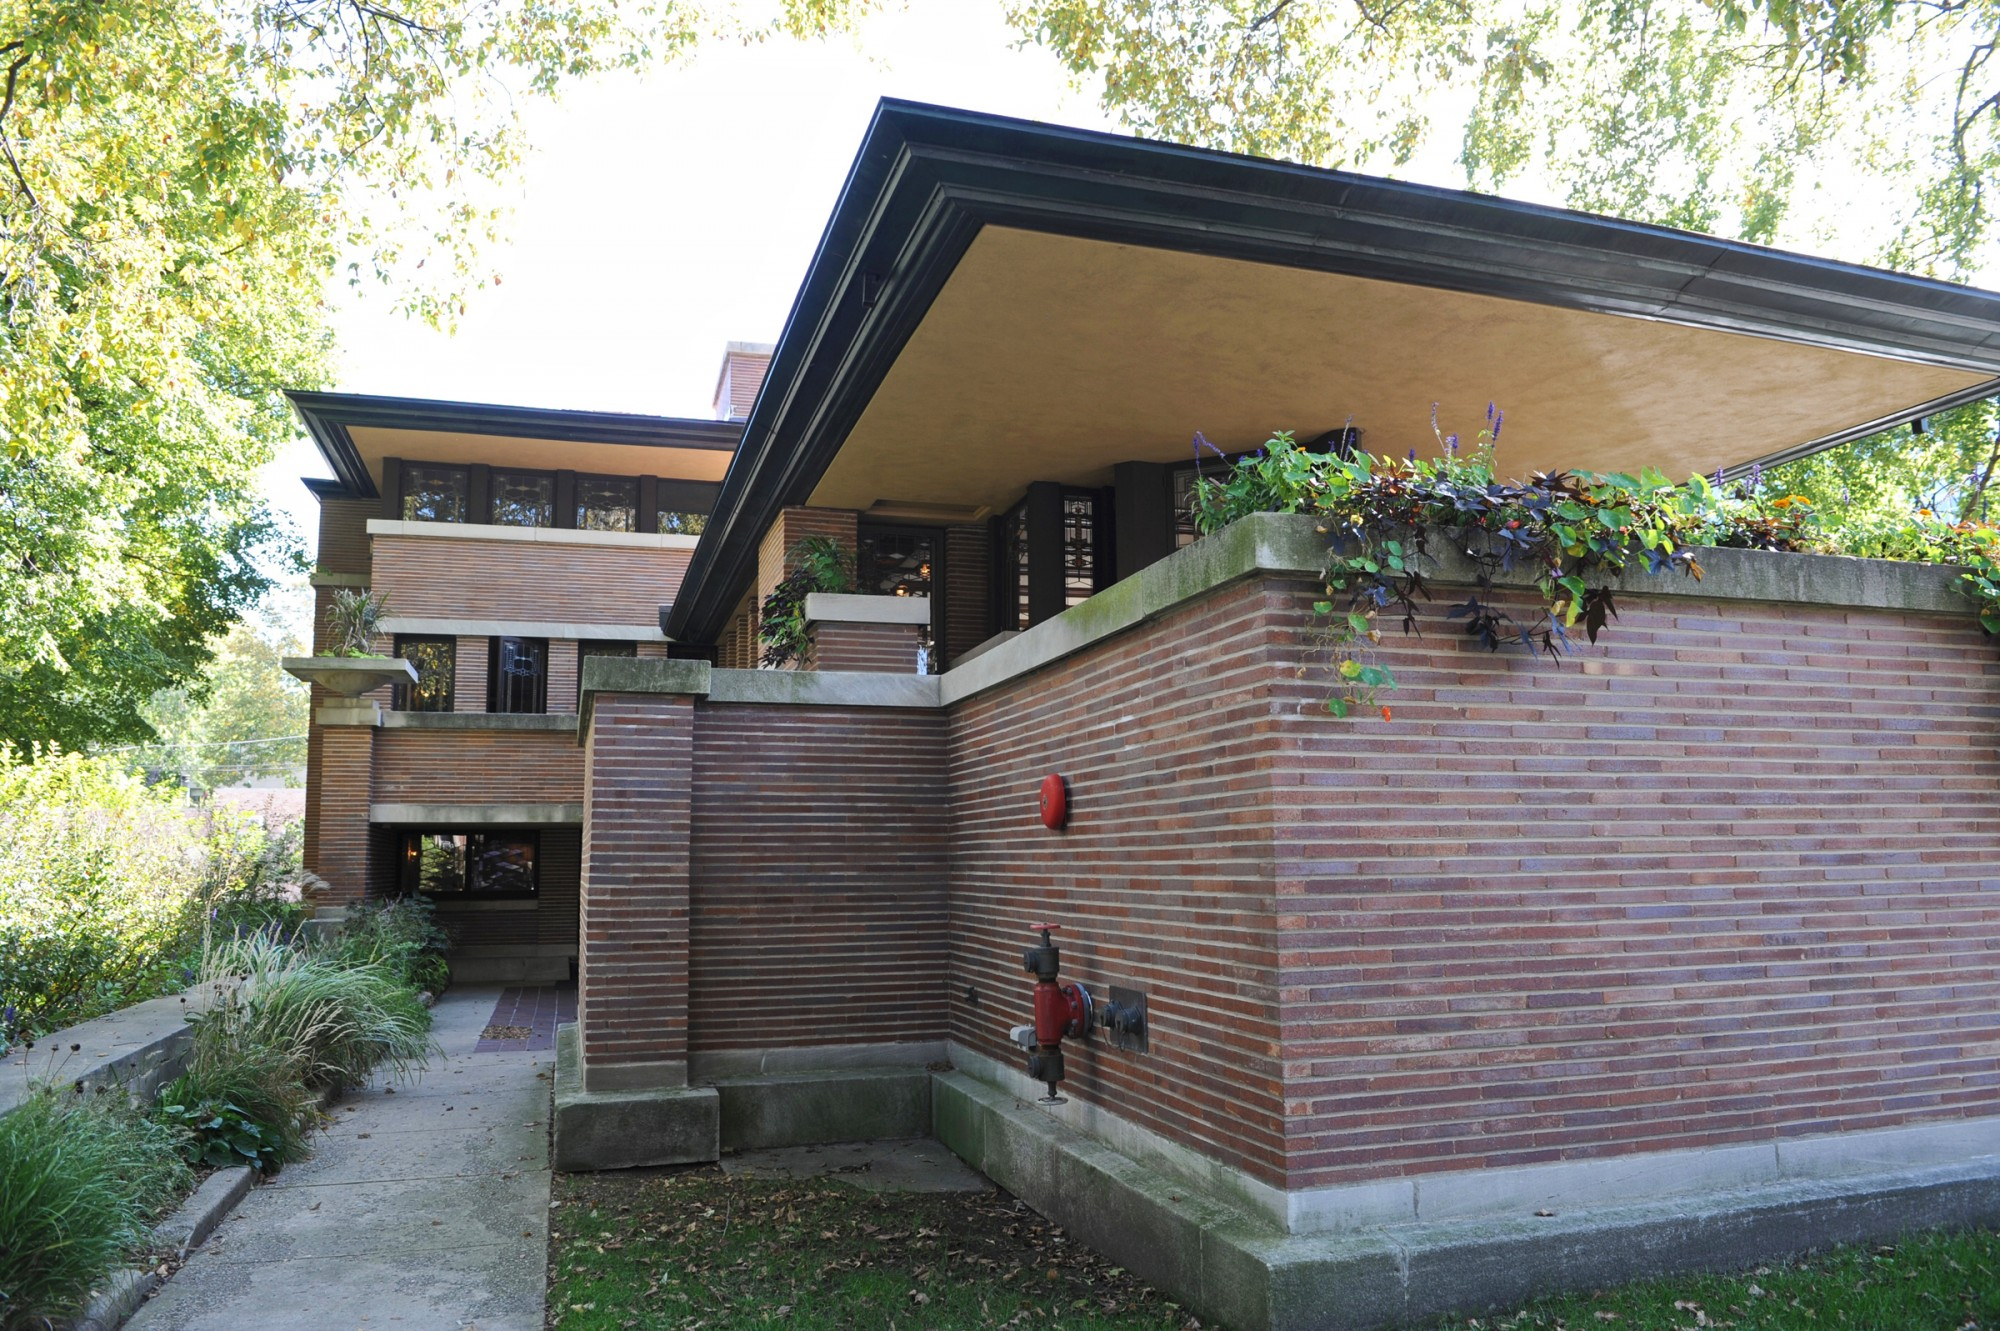 robie house buildings of chicago chicago architecture center cac